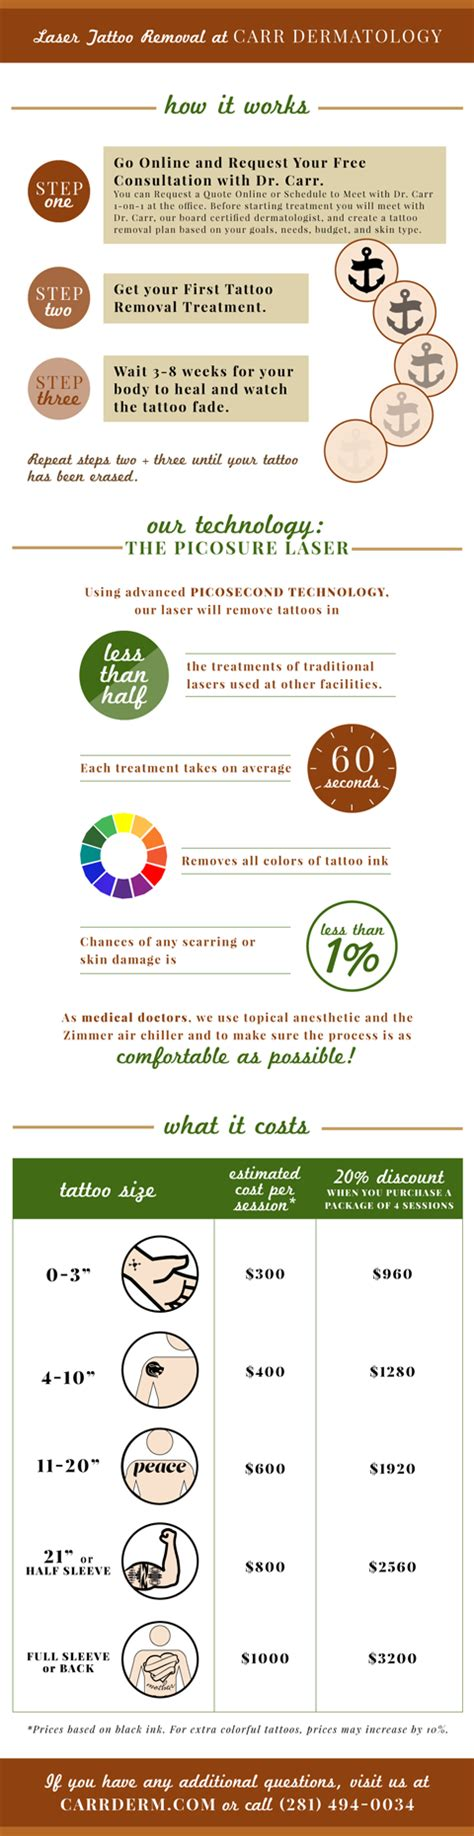 sugar land laser tattoo removal an infographic about laser removal using the